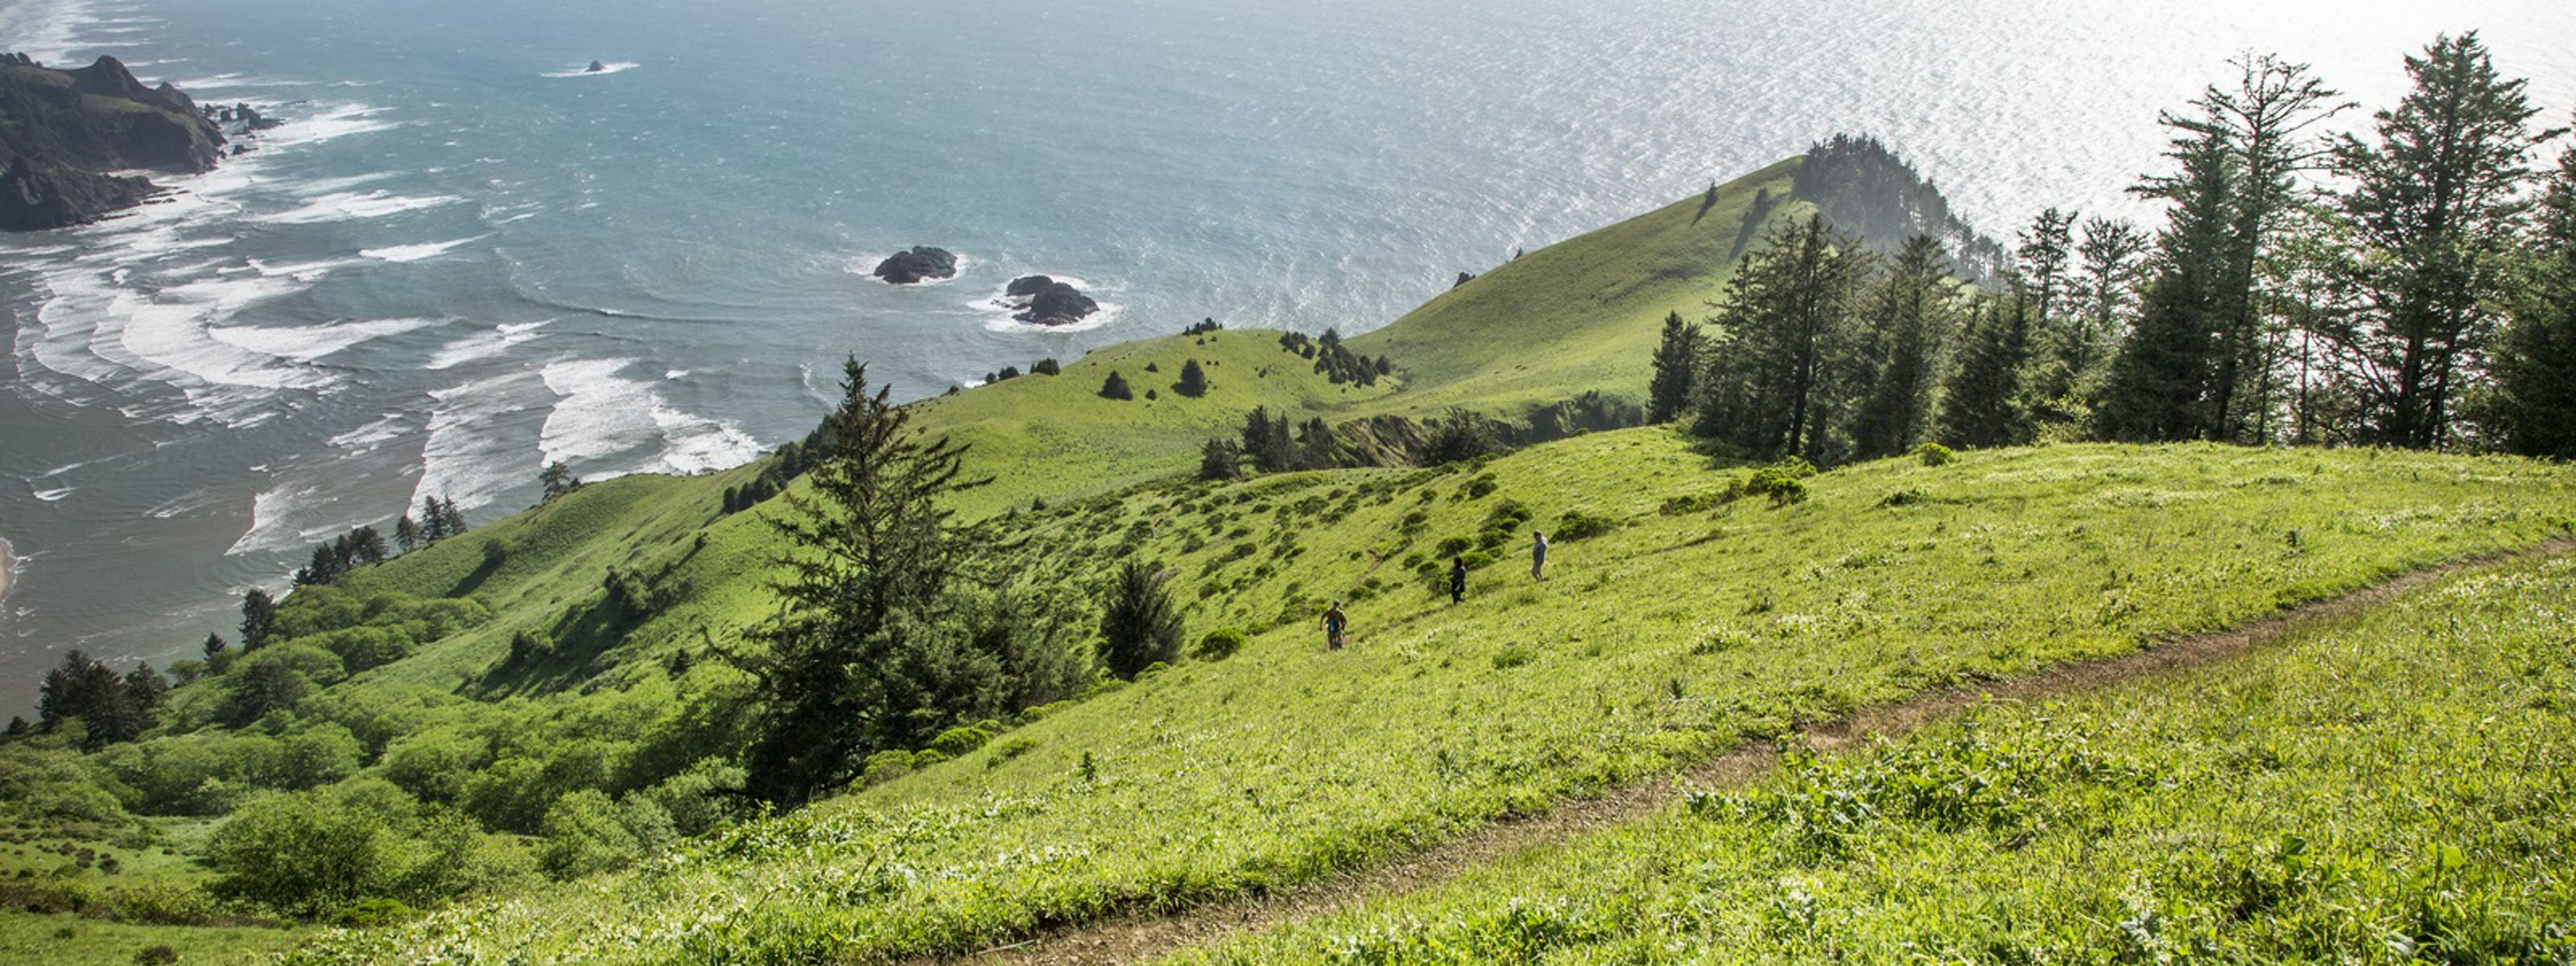 Headland of TNC's Cascade Head Preserve near Lincoln City, Oregon.